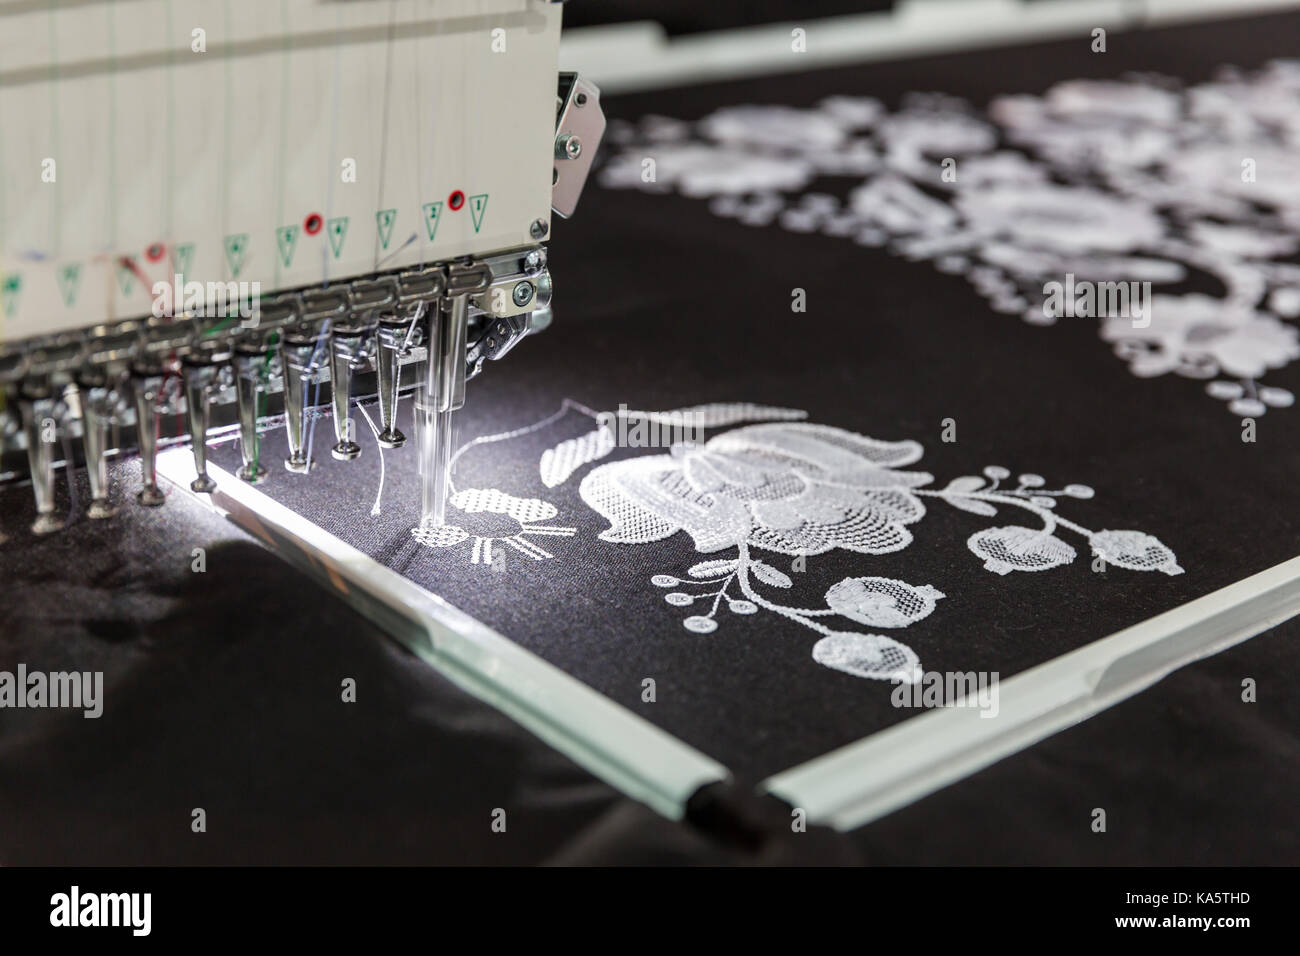 Sewing machine in work, textile fabric, nobody. Factory production, sew manufacturing, needlework technology Stock Photo